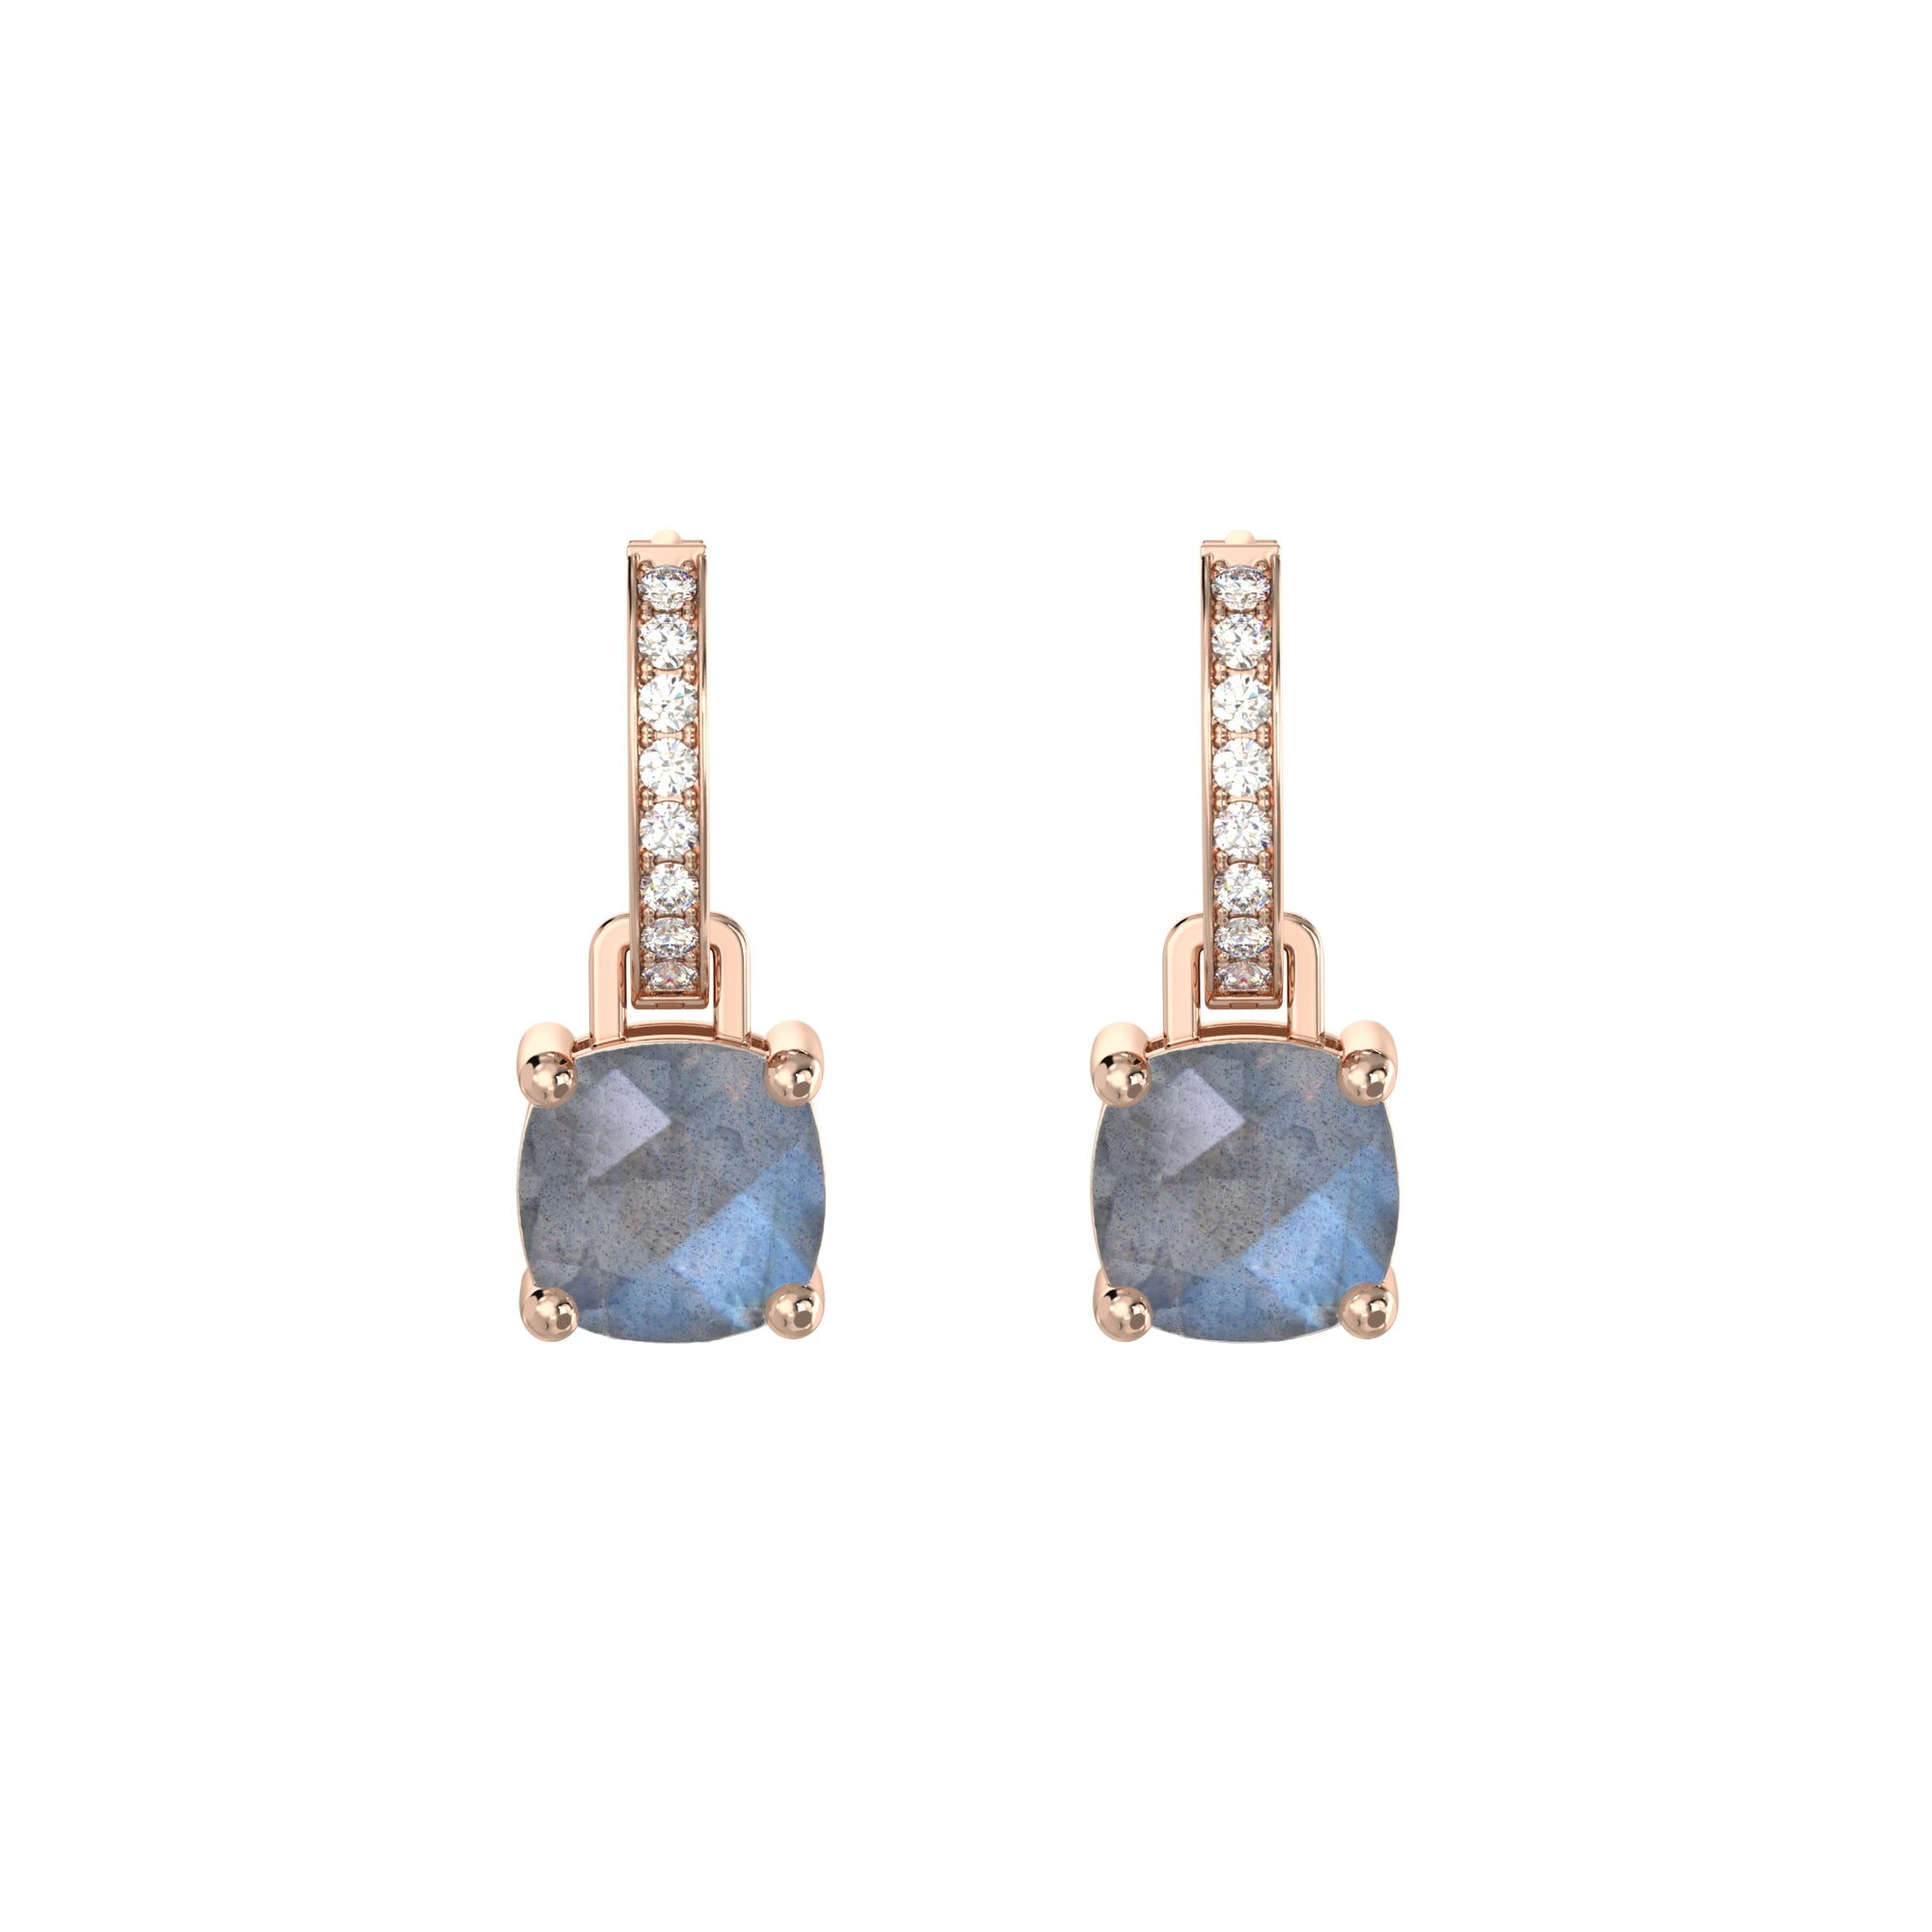 925 Silver Luxe Series Earrings Charms - Wylie (Labradorite) - Rose Gold Plated